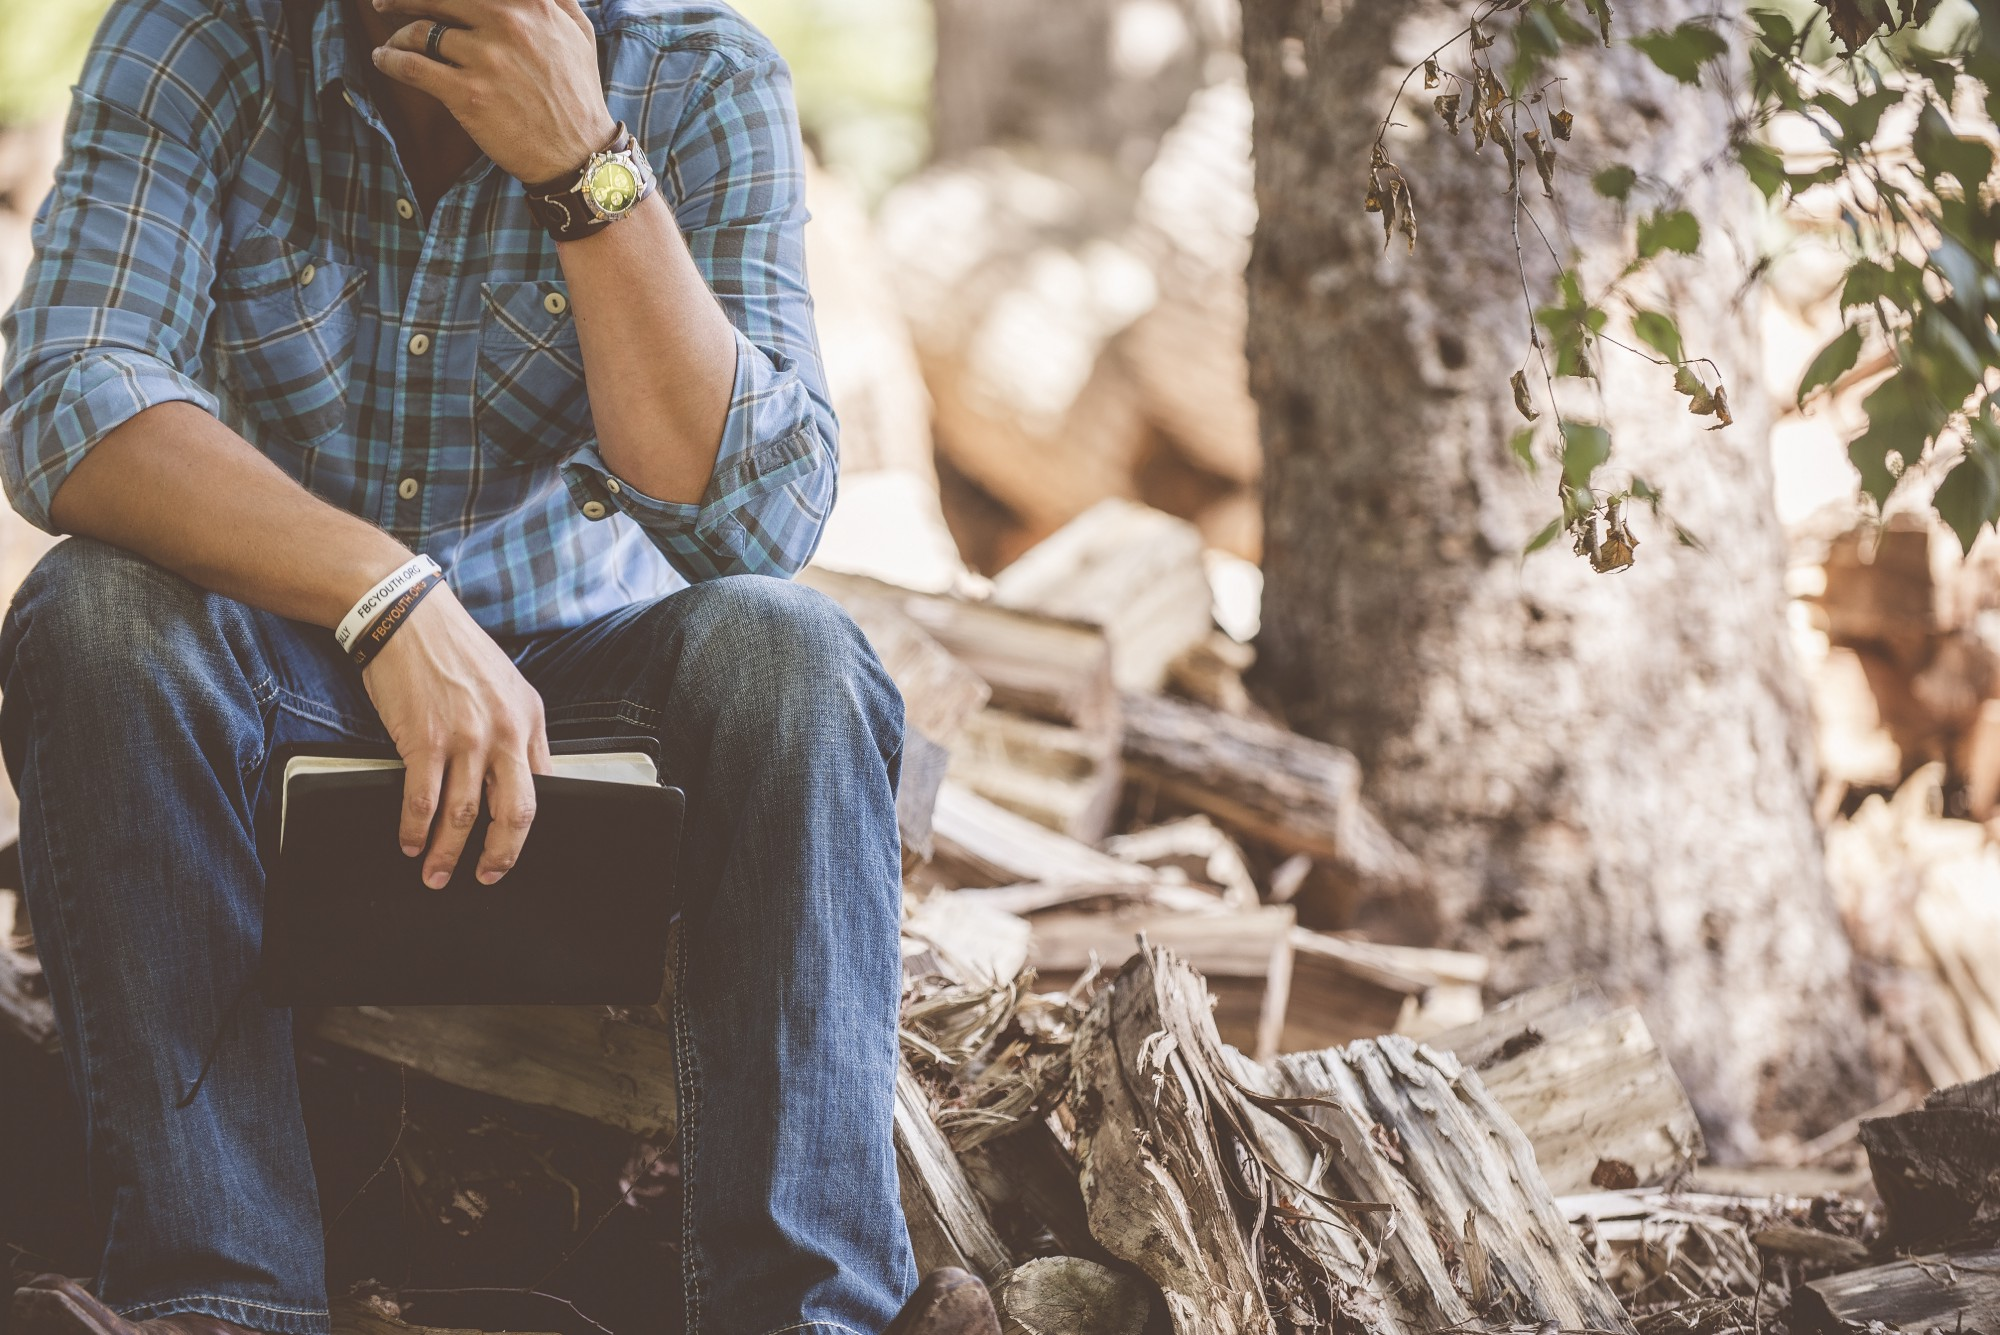 A white man sitting on a log next to a tree, holding a Bible. His other hand is touching his chin. His head is out of frame.